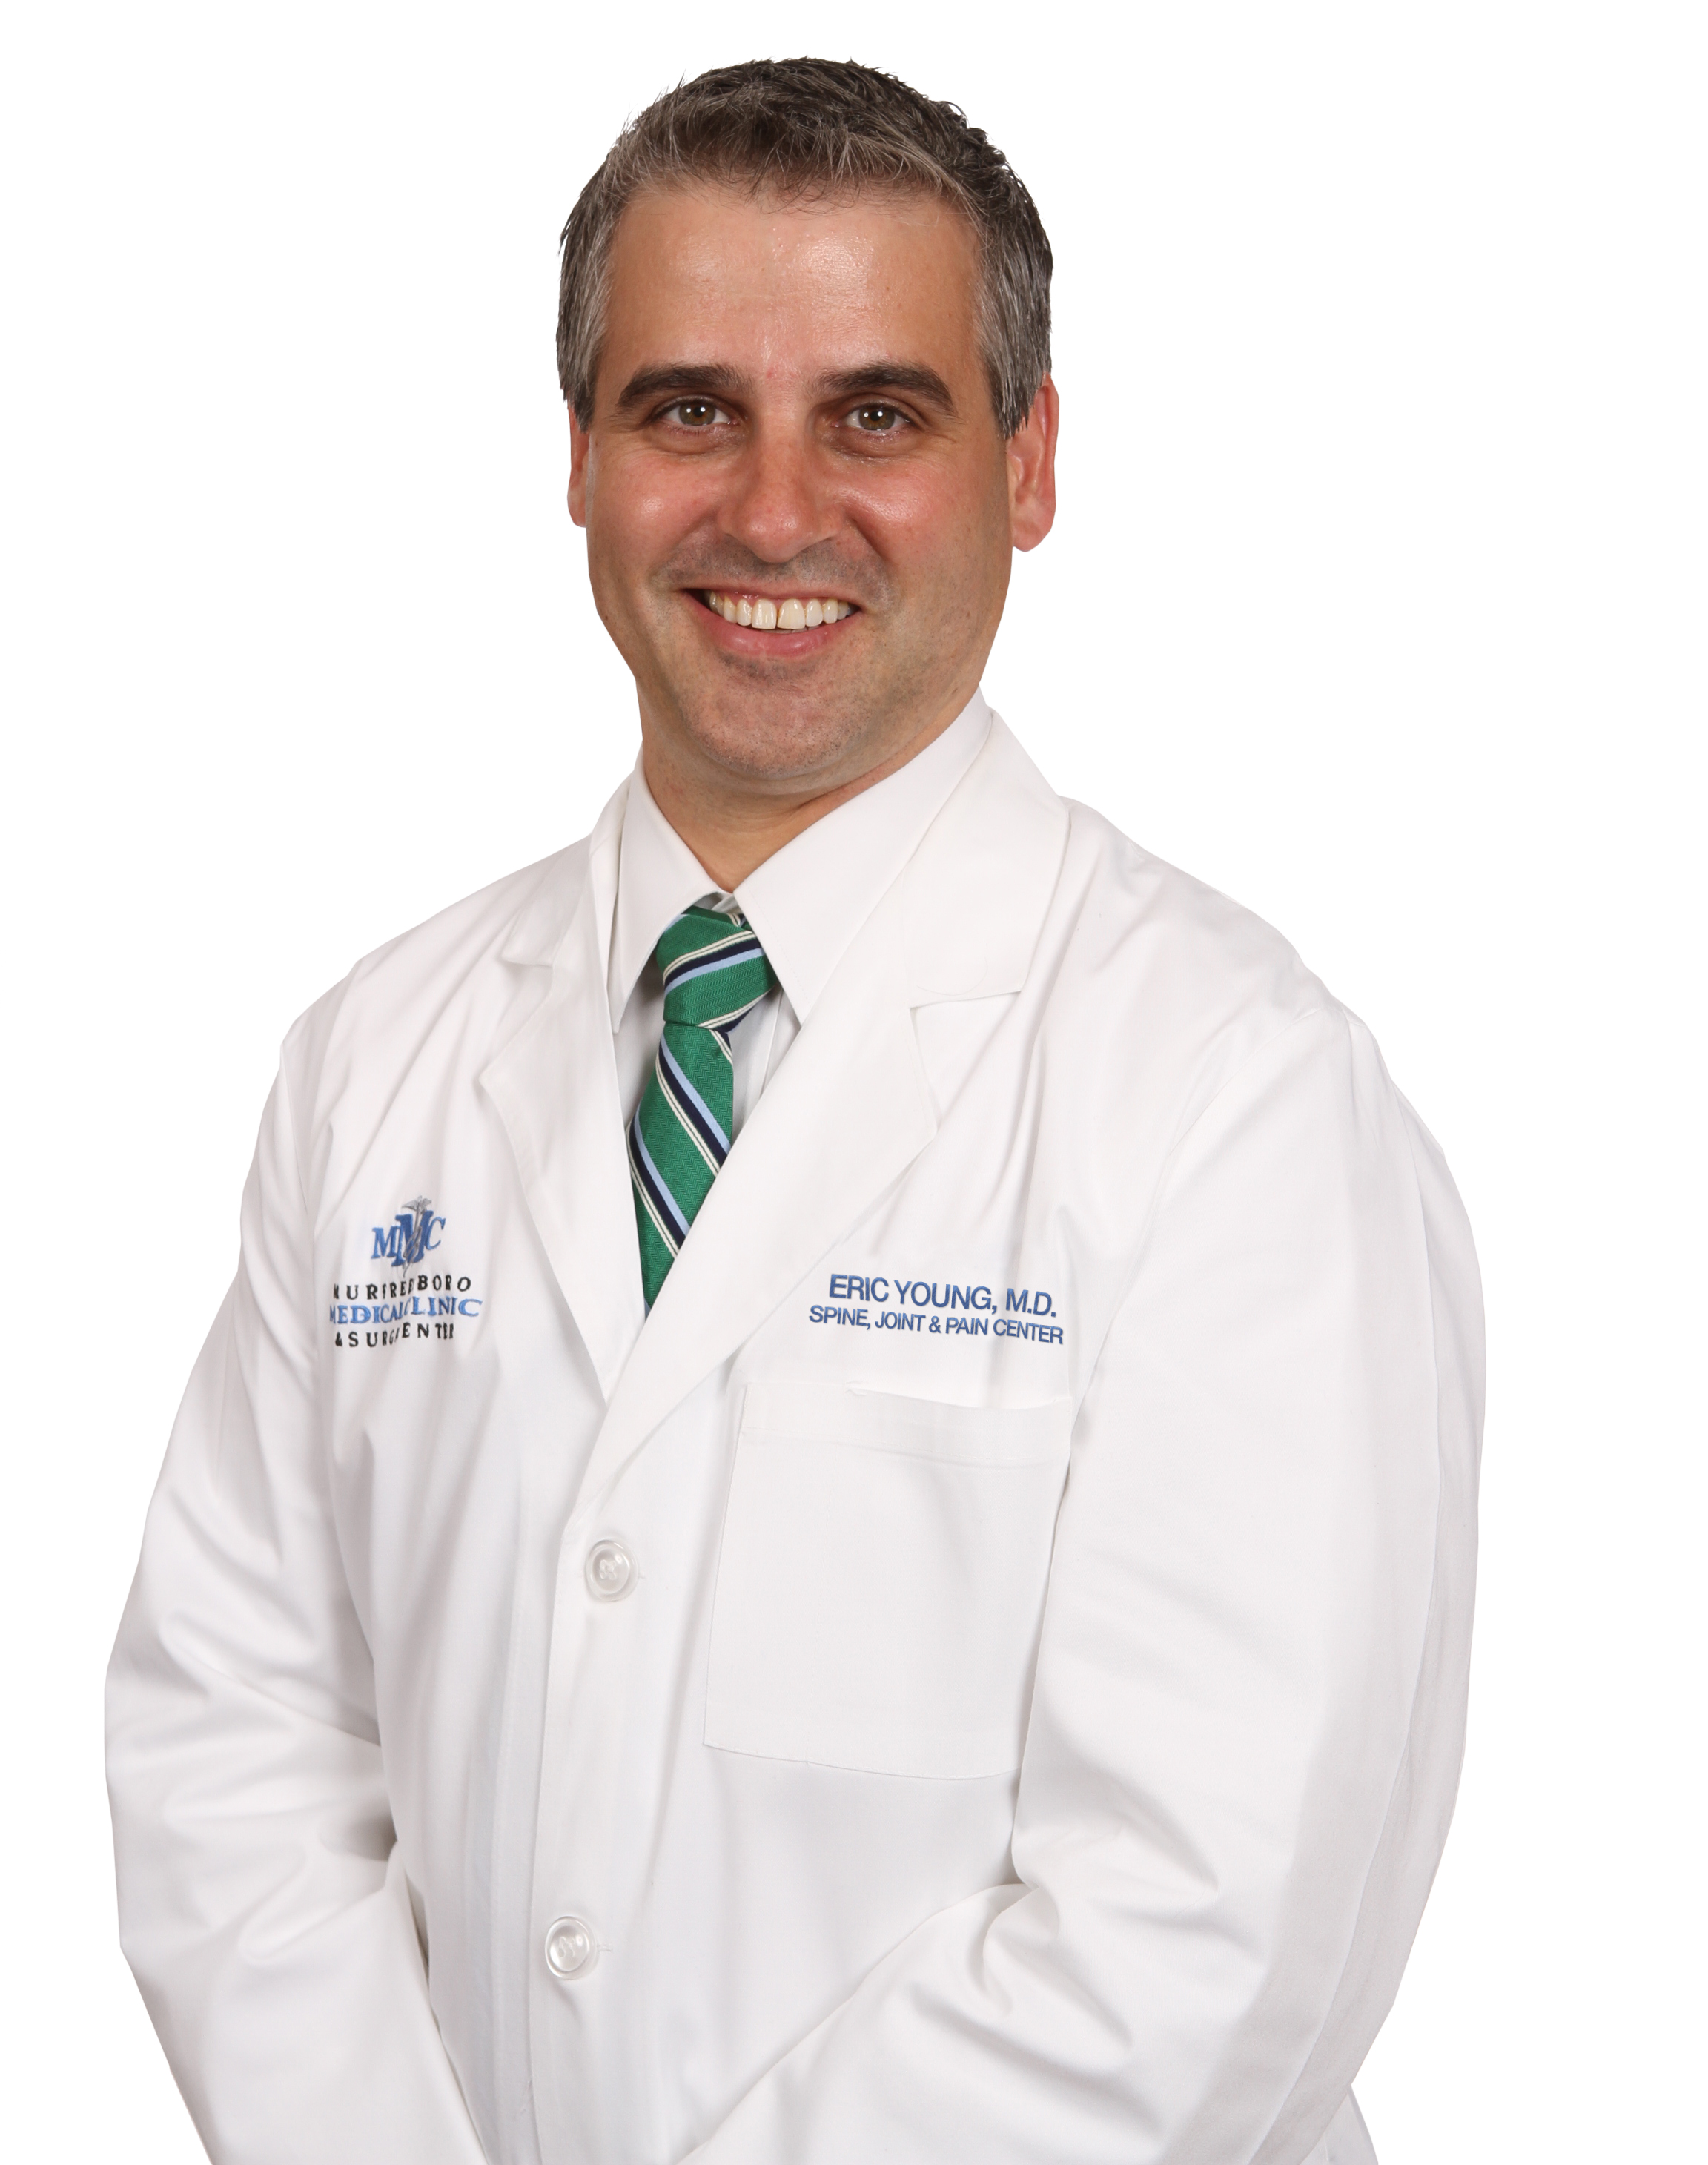 Murfreesboro Medical Clinic is excited to announce the addition of Eric Young, M.D. to our Spine, Joint and Pain Department.